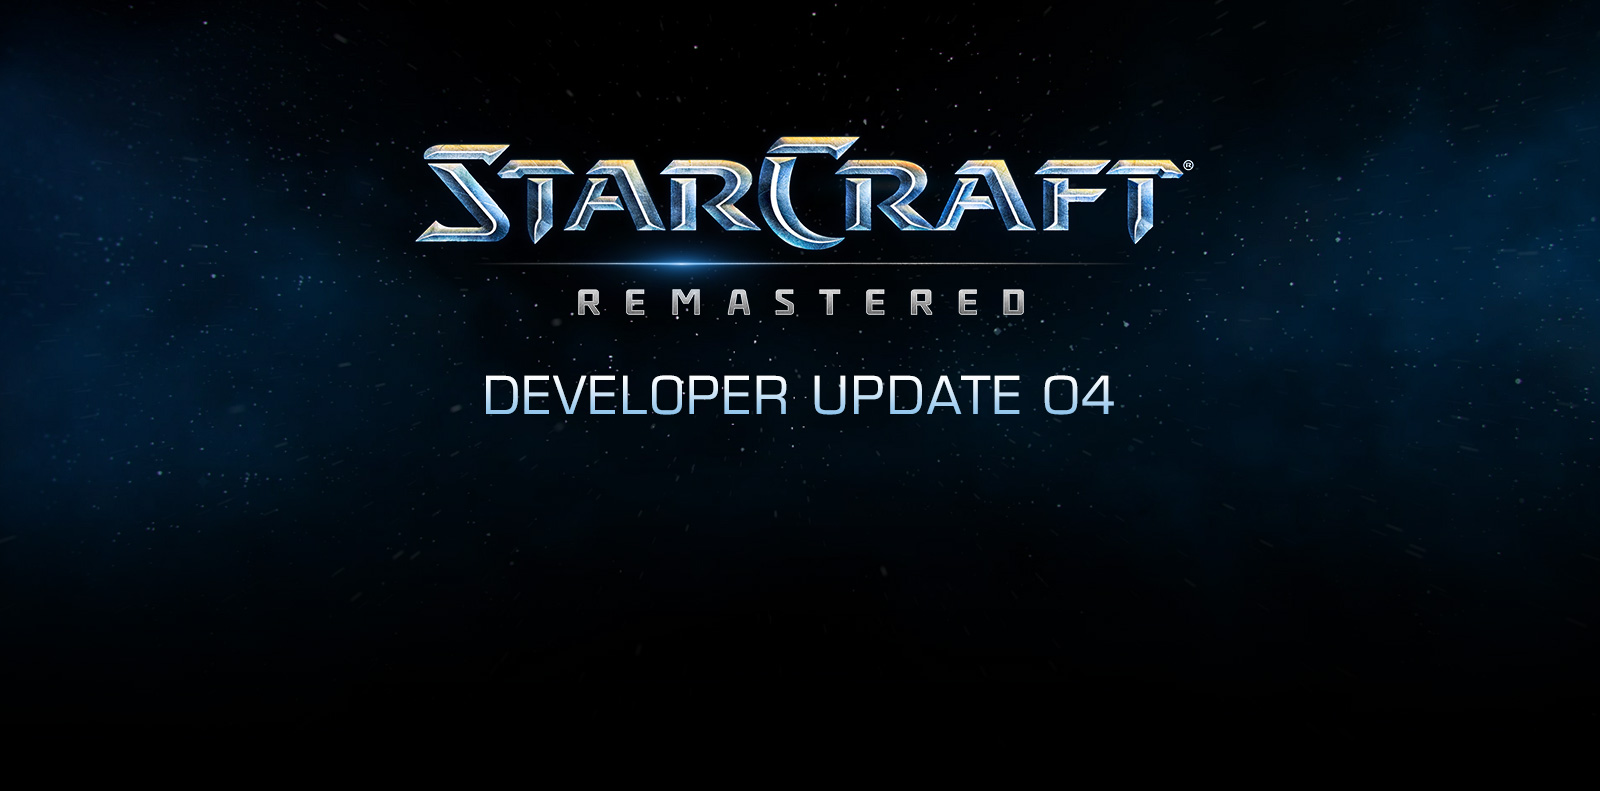 StarCraft: Remastered Developer Update 4